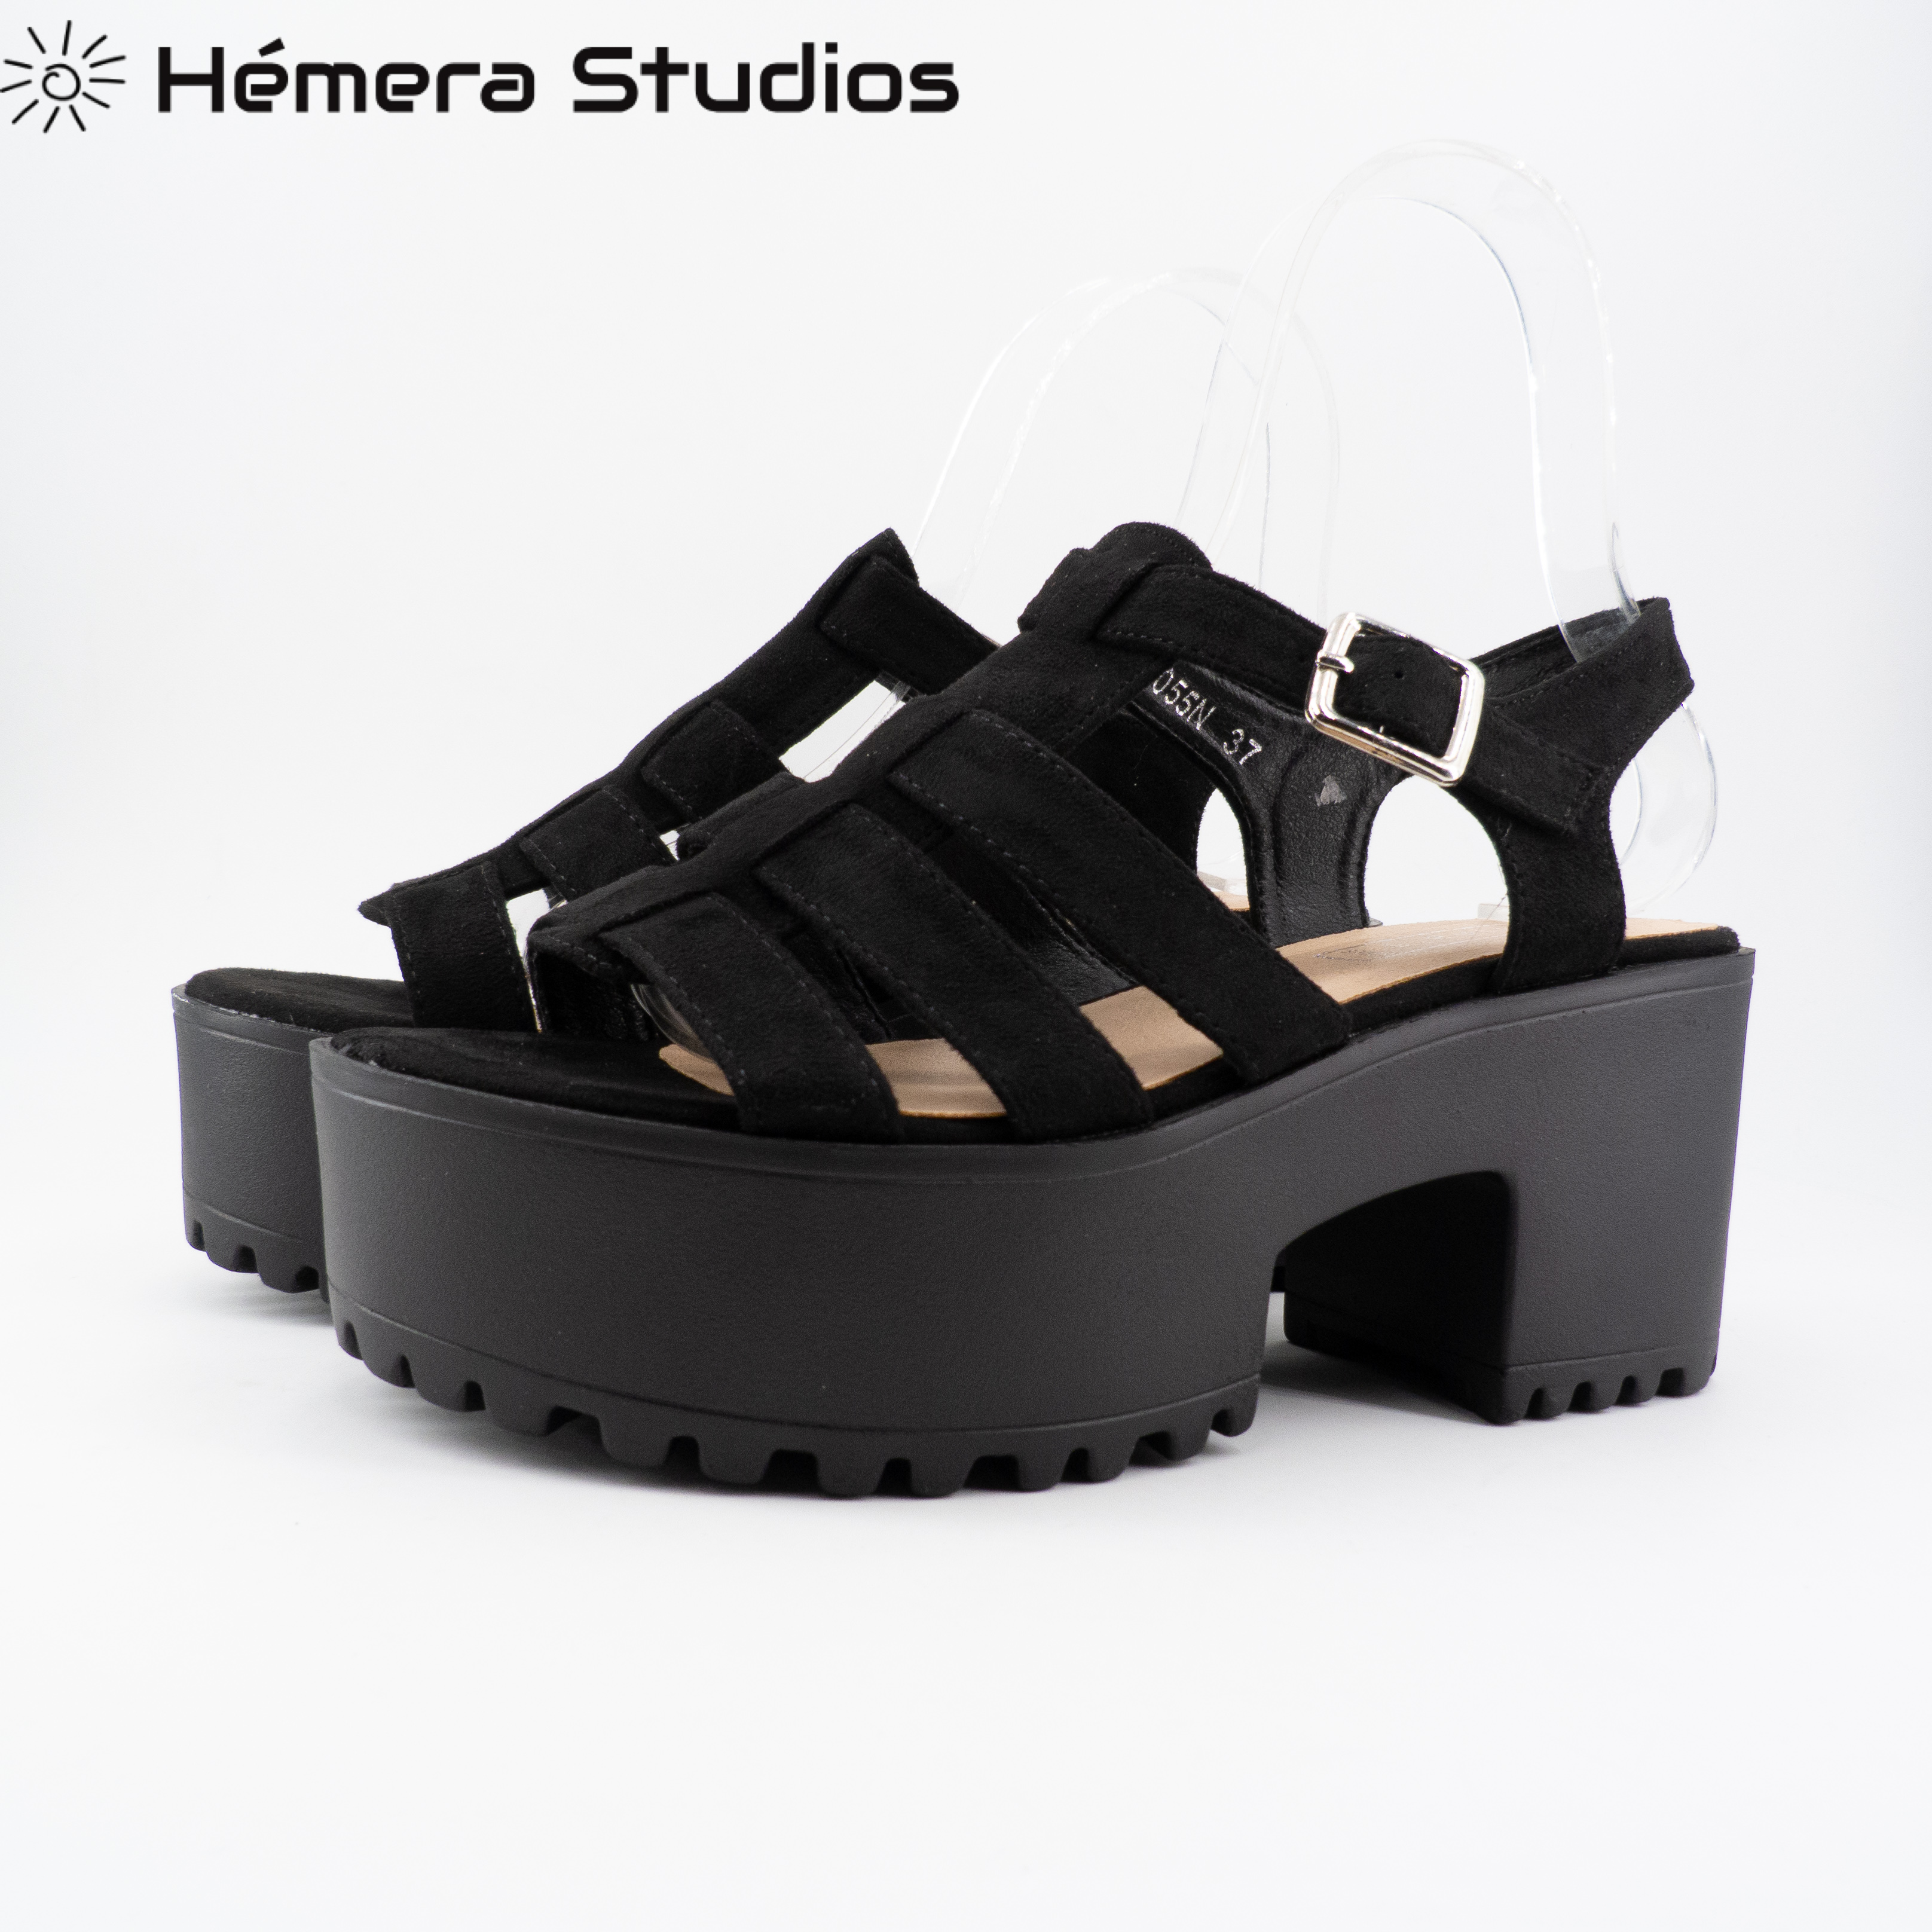 Summer Sandals For Women Black Design Rome Style Platform Sandals Comfortable High Heel Beach Slippers With Thick Sole